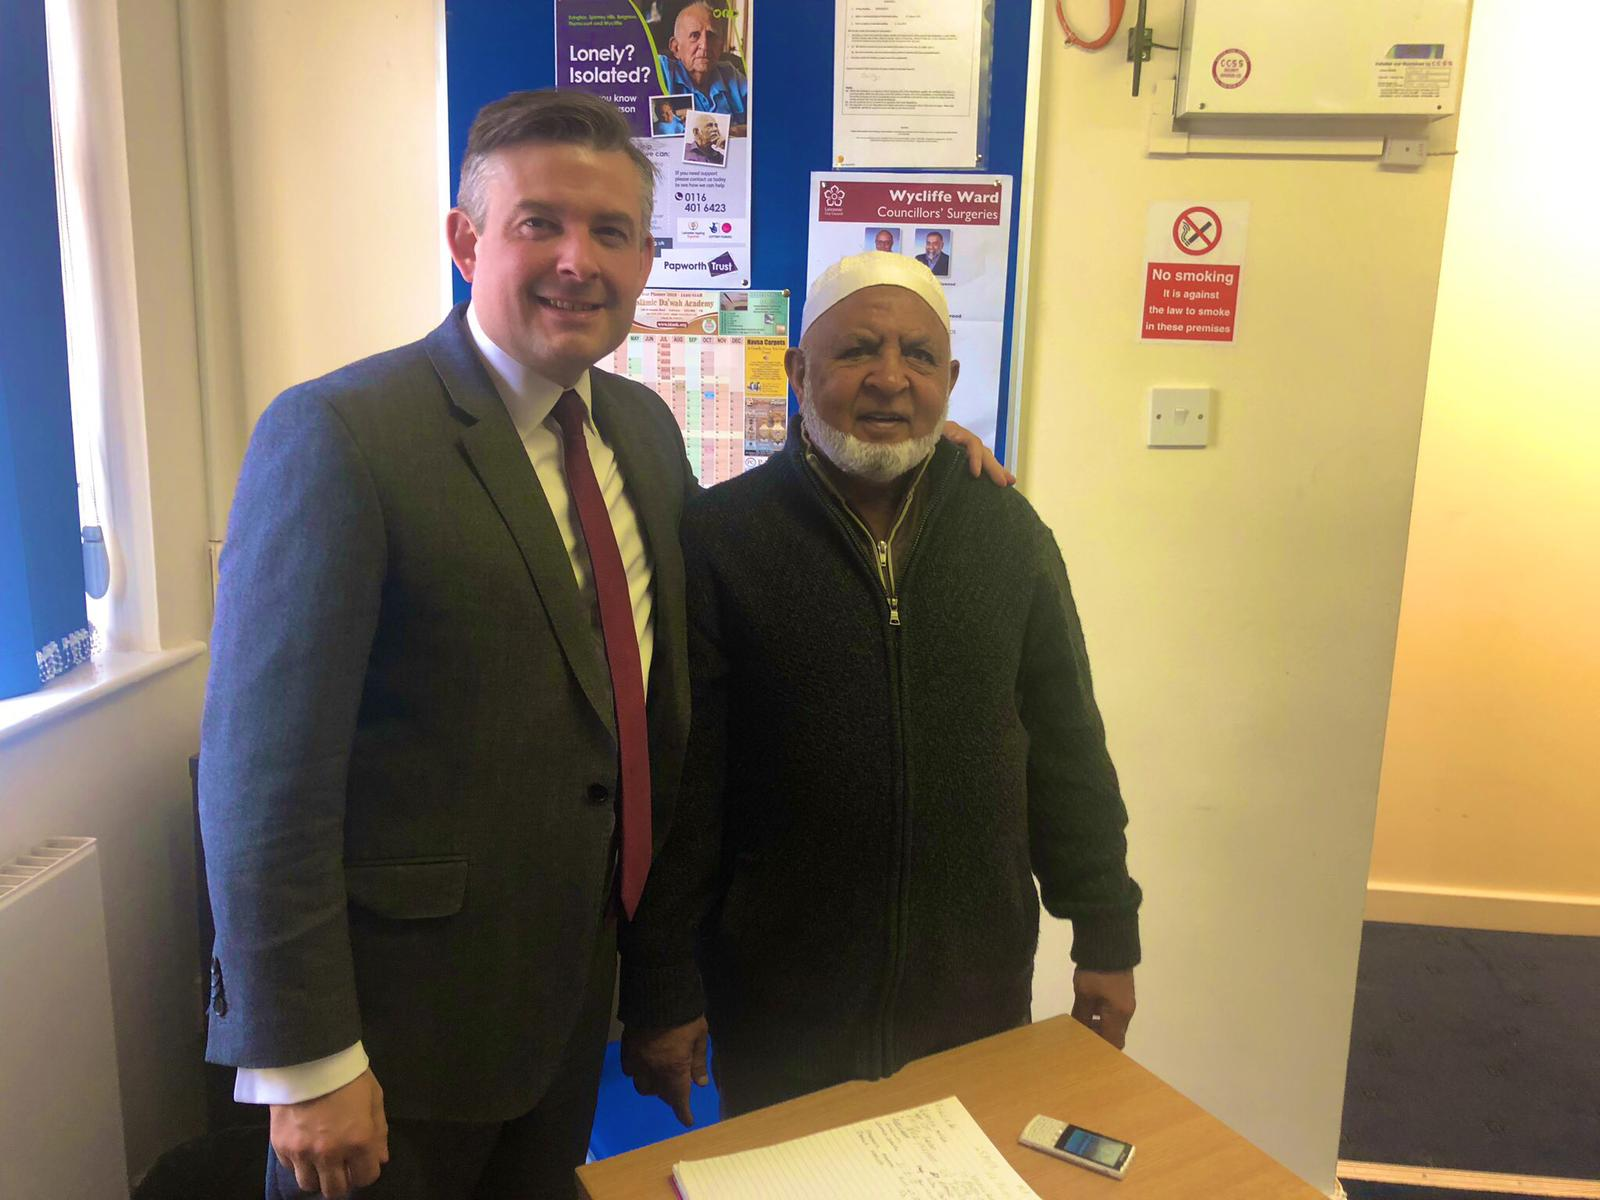 Jon had a busy Advice Session at St Peter's. Thanks to the Tenants and Residents Association for hosting the session - Friday May 31 2019